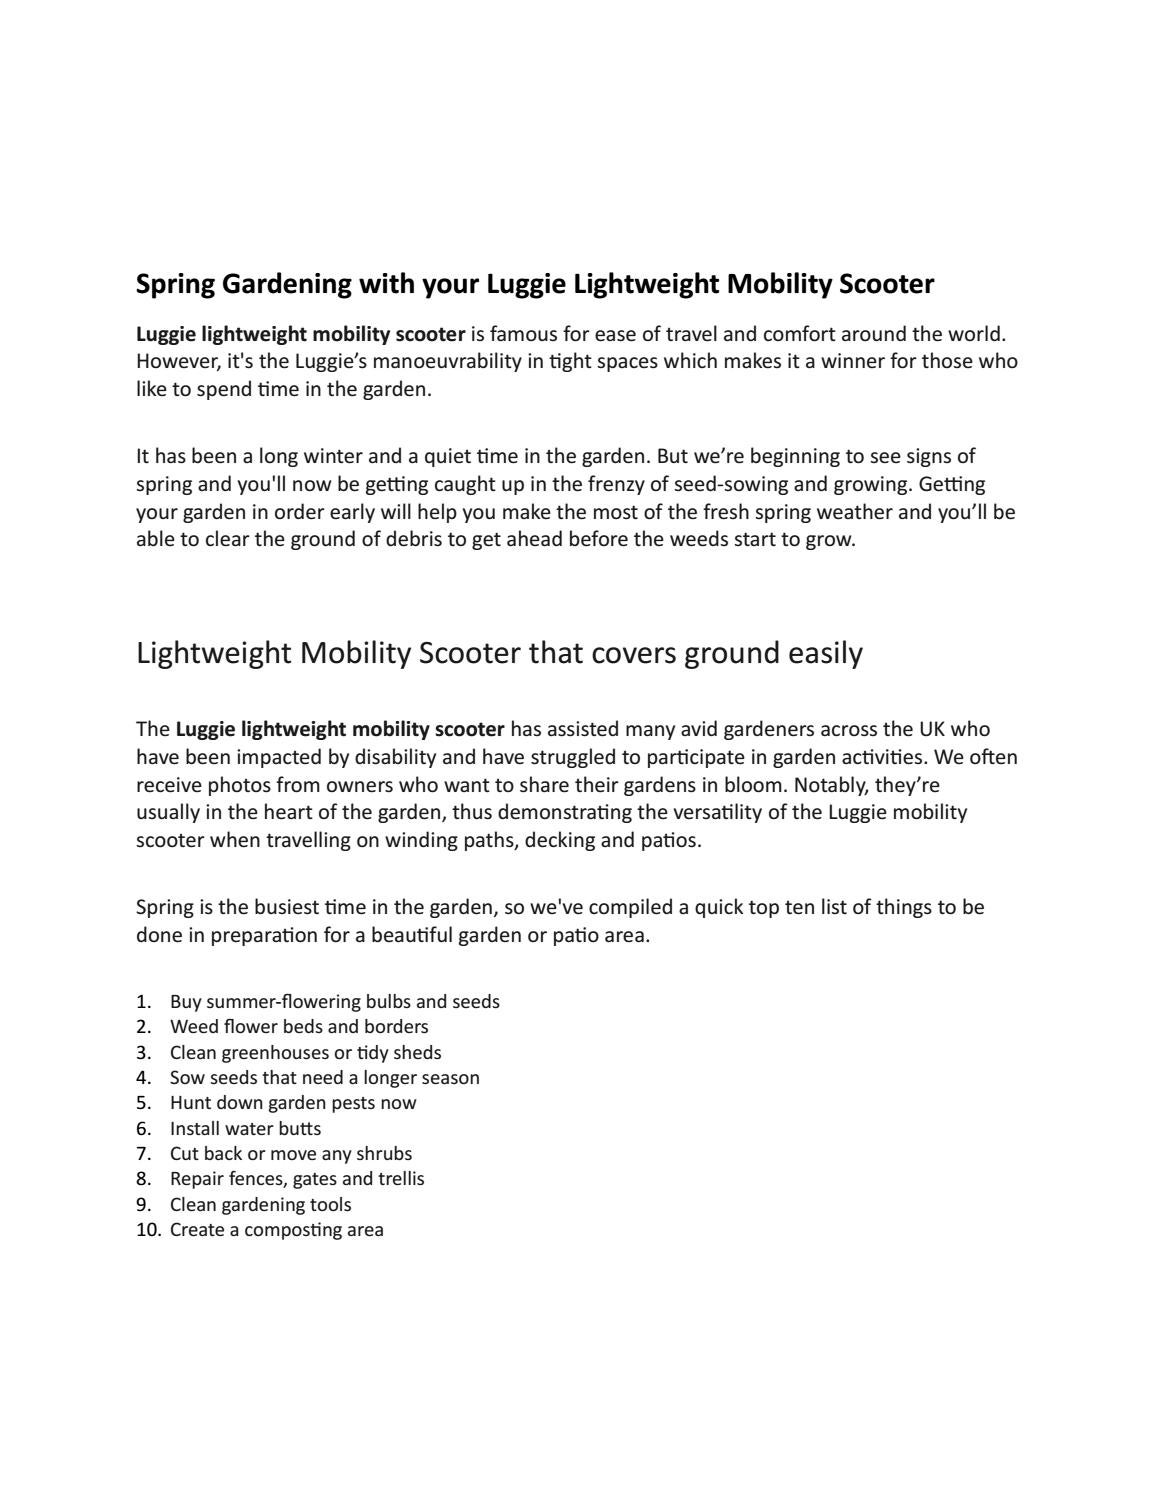 spring gardening with your luggie lightweight mobility scooter by